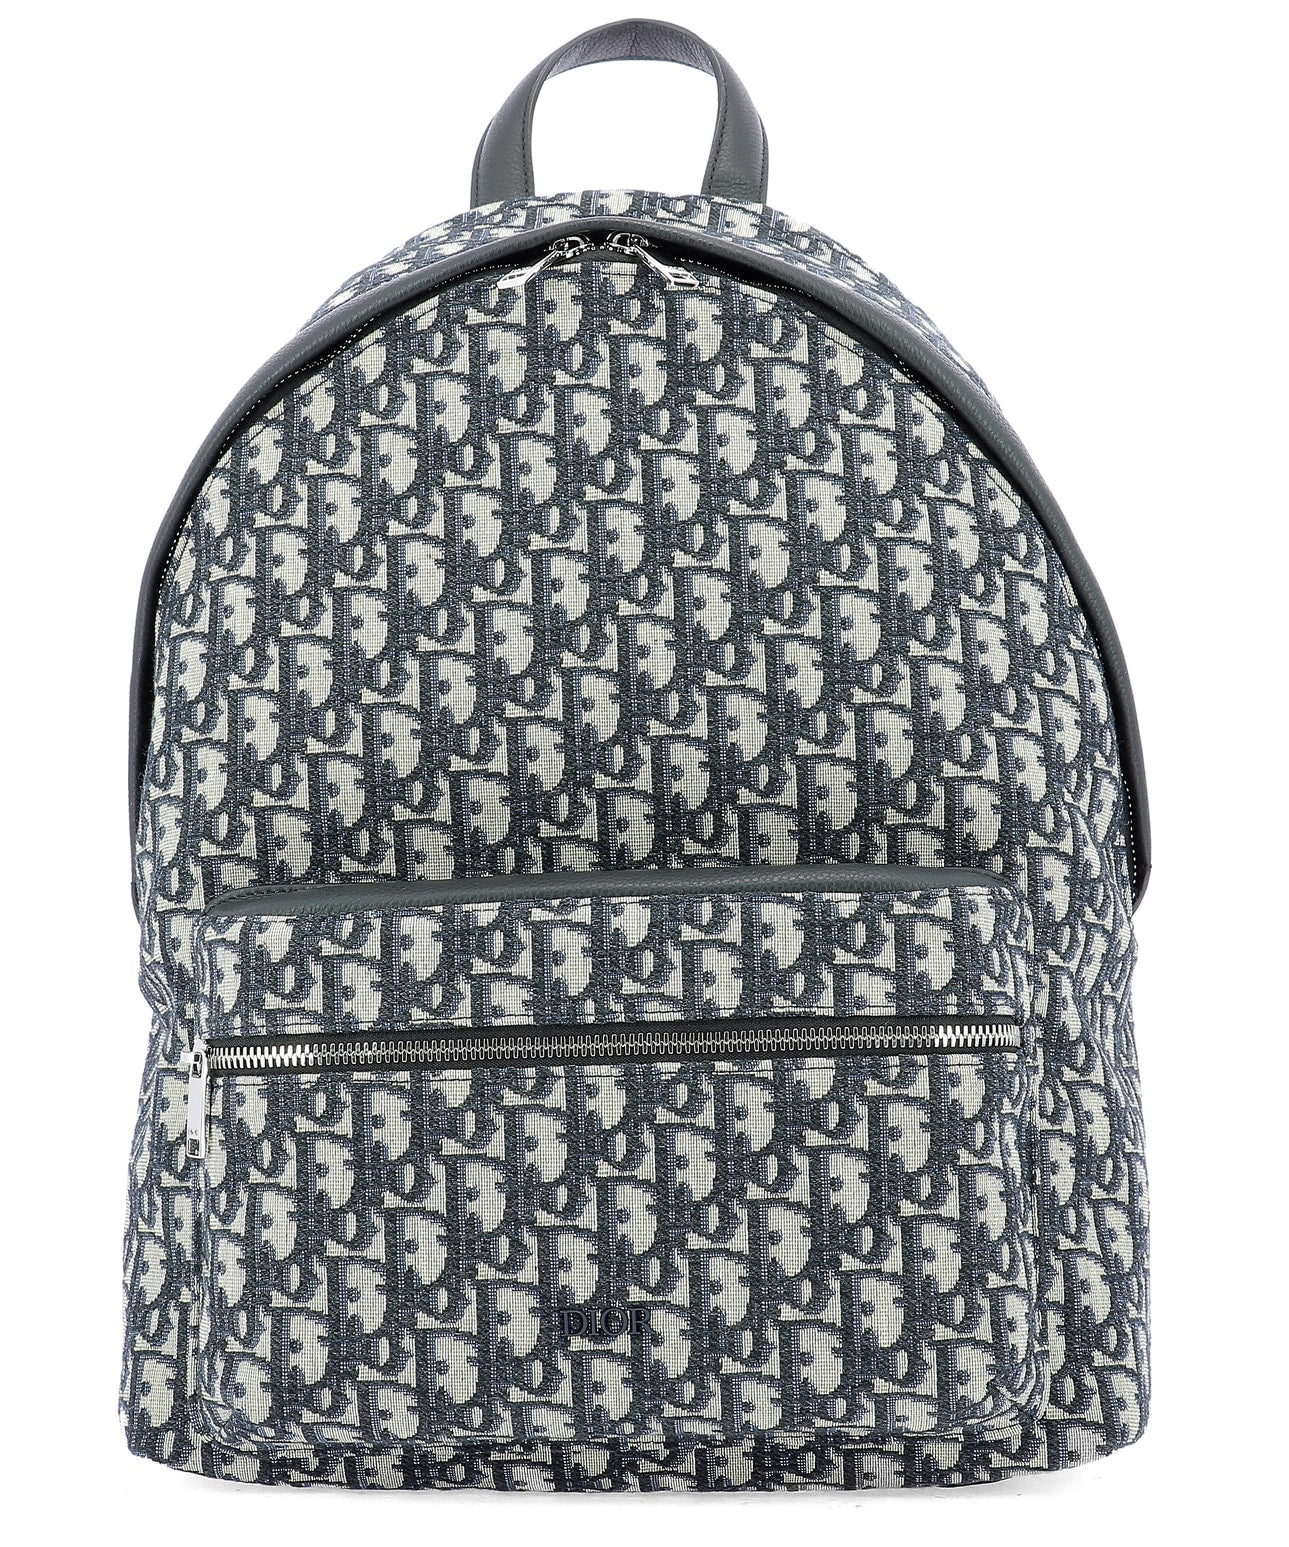 Dior Homme Backpacks DIOR HOMME ALL OVER LOGO VOYAGE BACKPACK